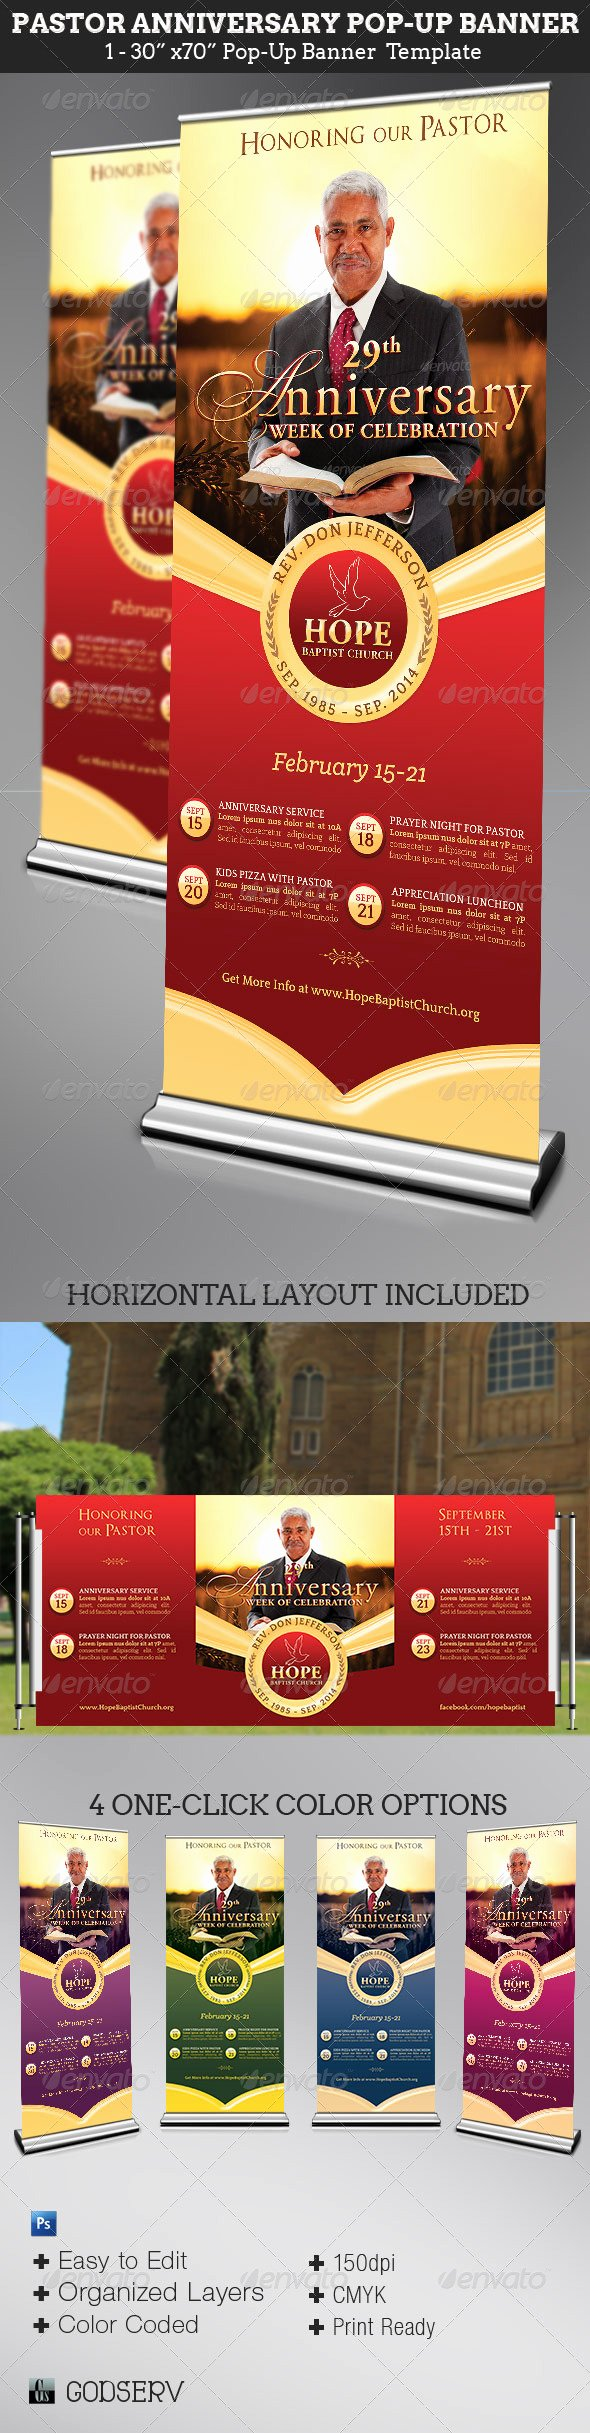 Pop Up Banner Template New Pastor Anniversary Pop Up Banner Template